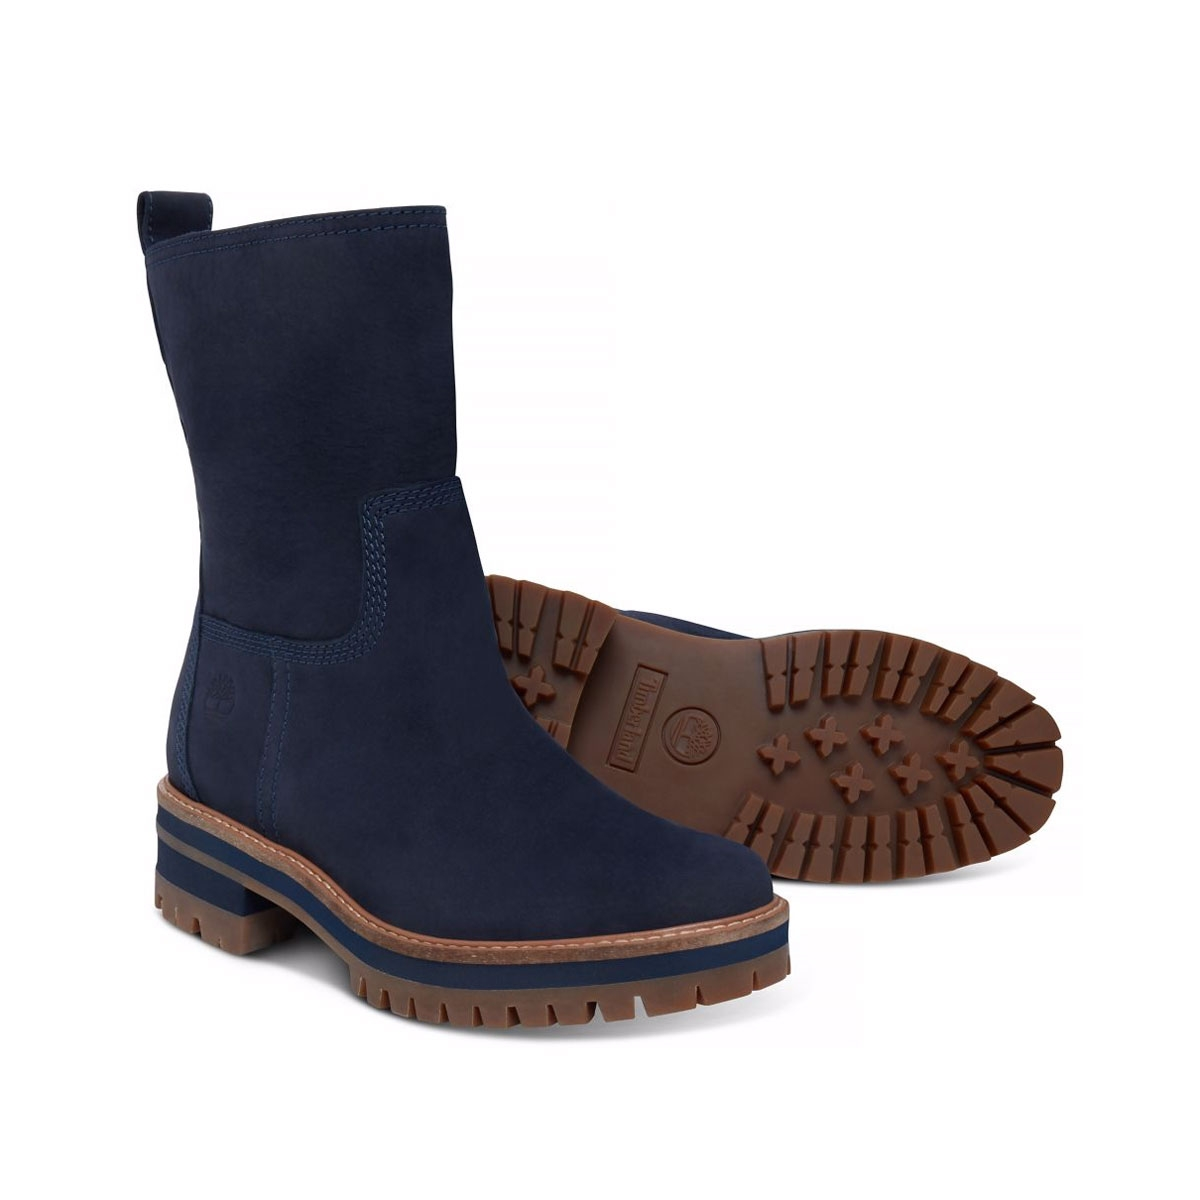 ea459ef3653c0 Image of Timberland Courmayeur Valley Mid Pull On Boots (Women's) - Navy  Nubuck